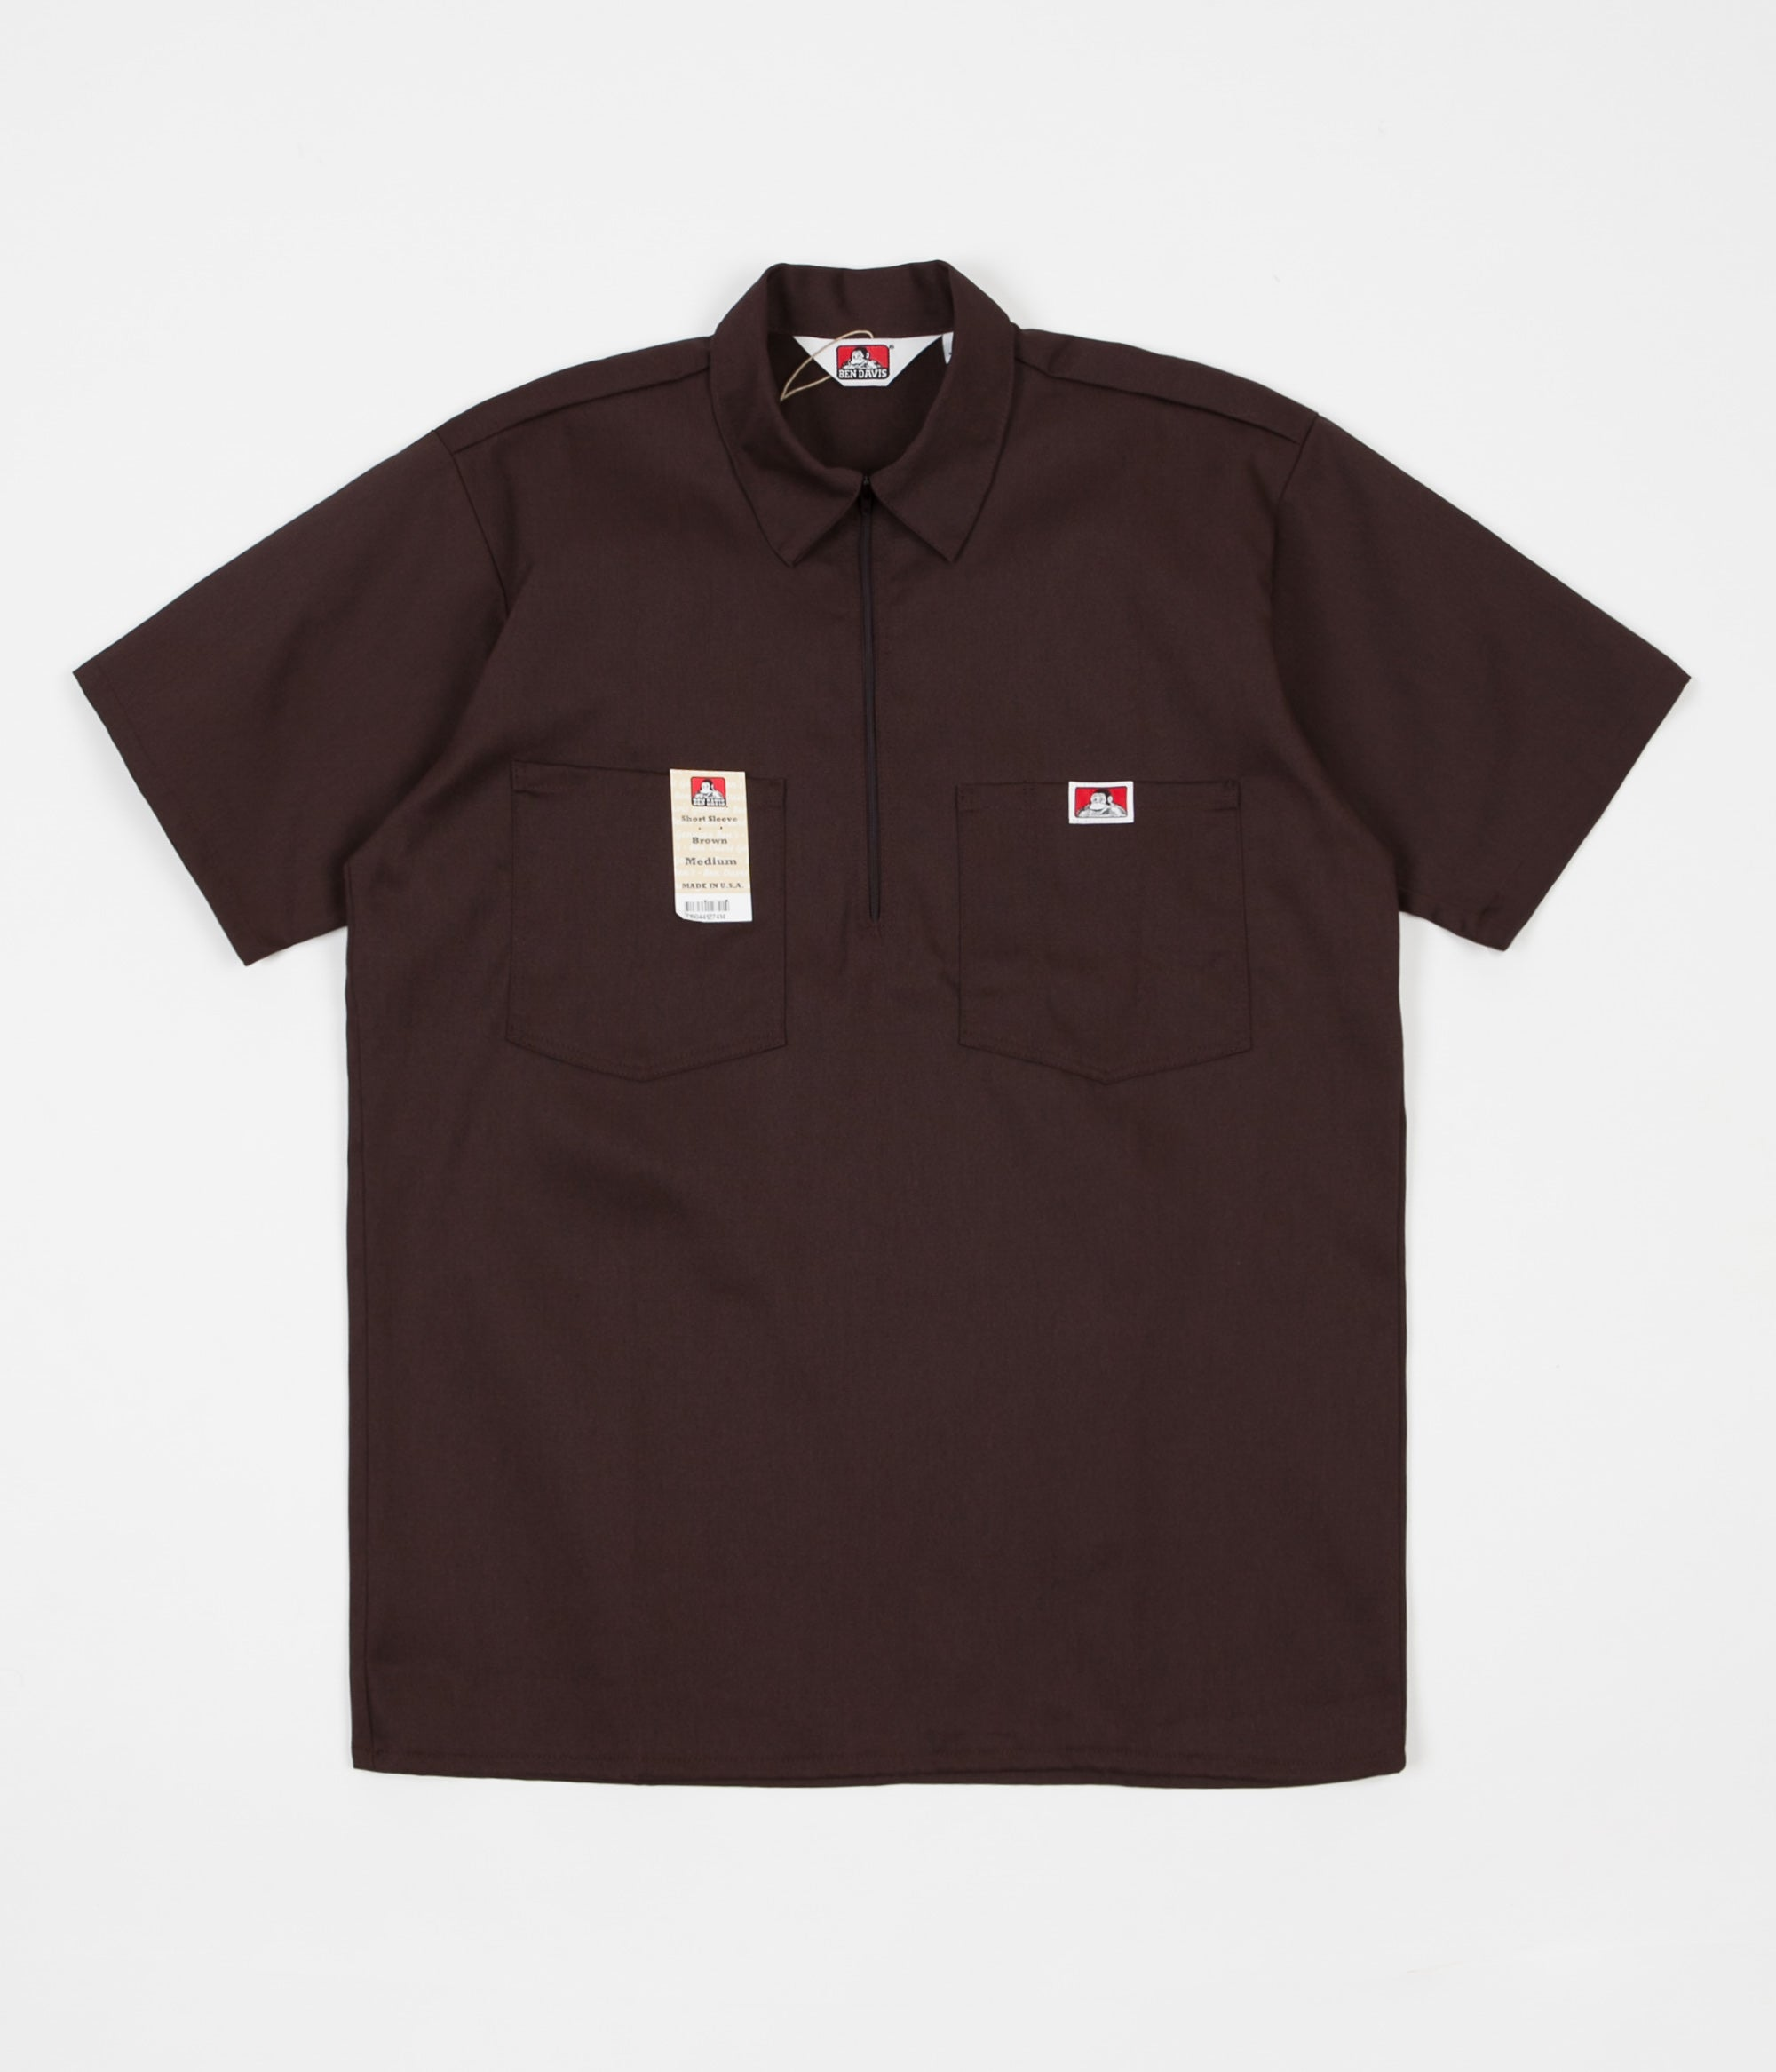 Ben Davis 1/2 Zip Shirt - Brown